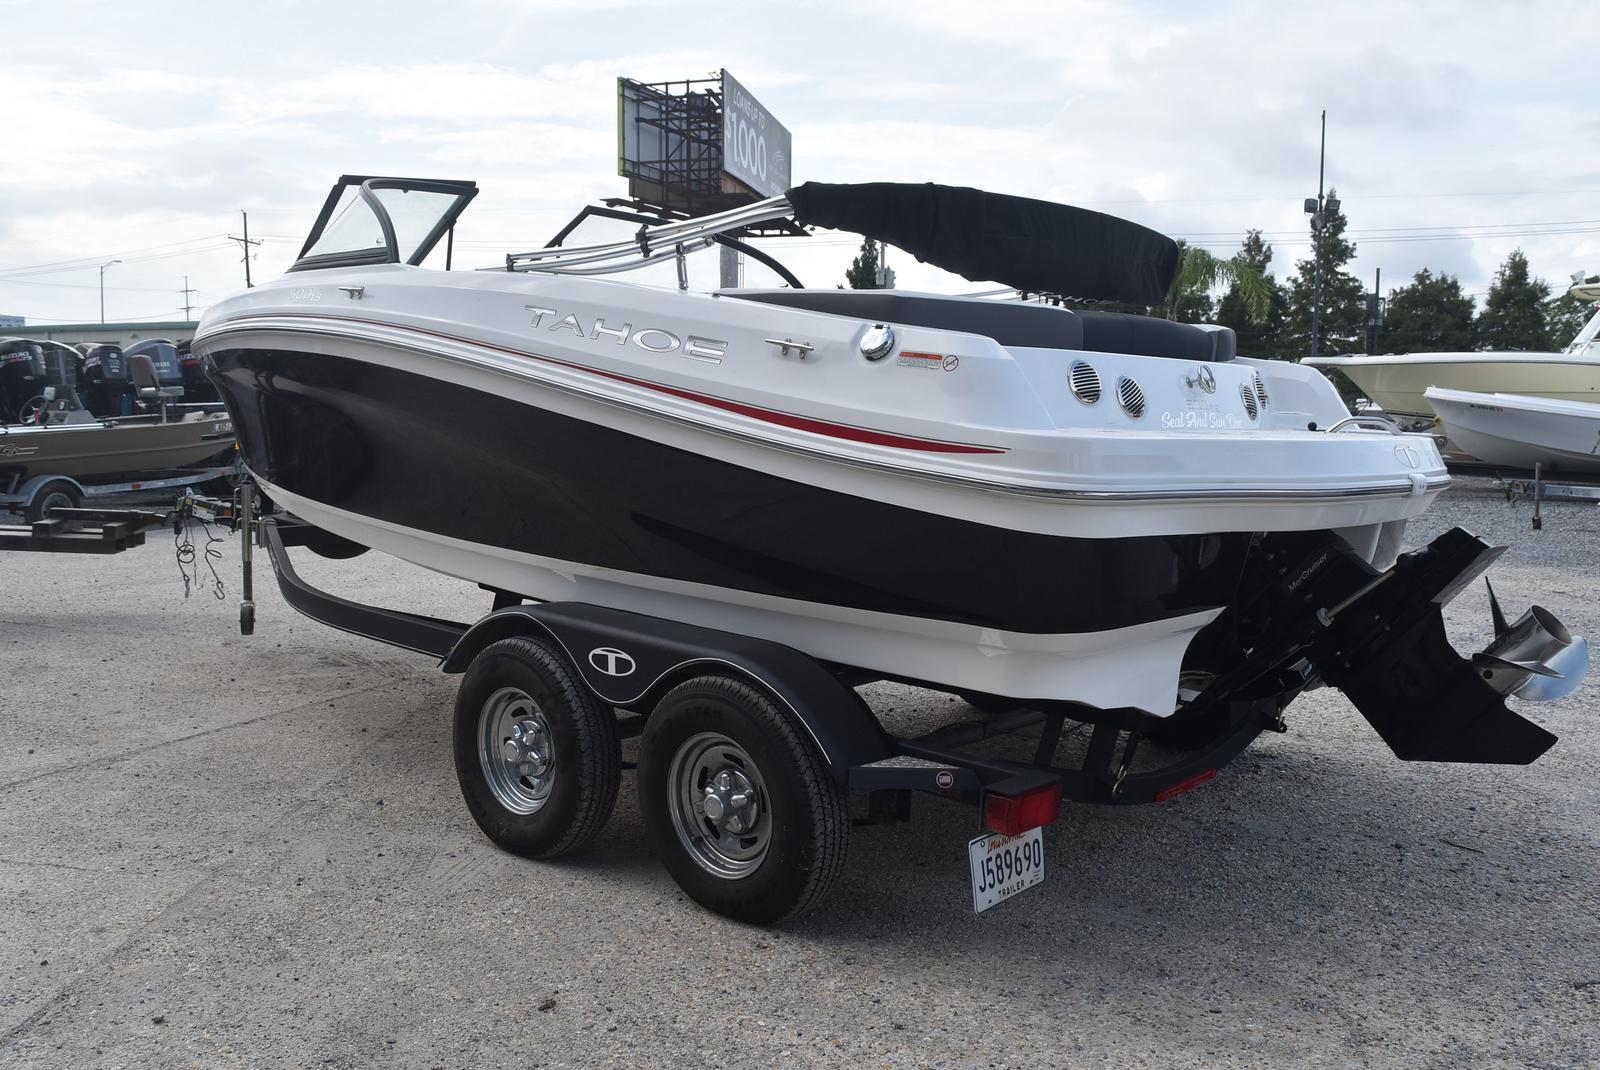 2018 Tahoe boat for sale, model of the boat is 500 TS & Image # 22 of 24